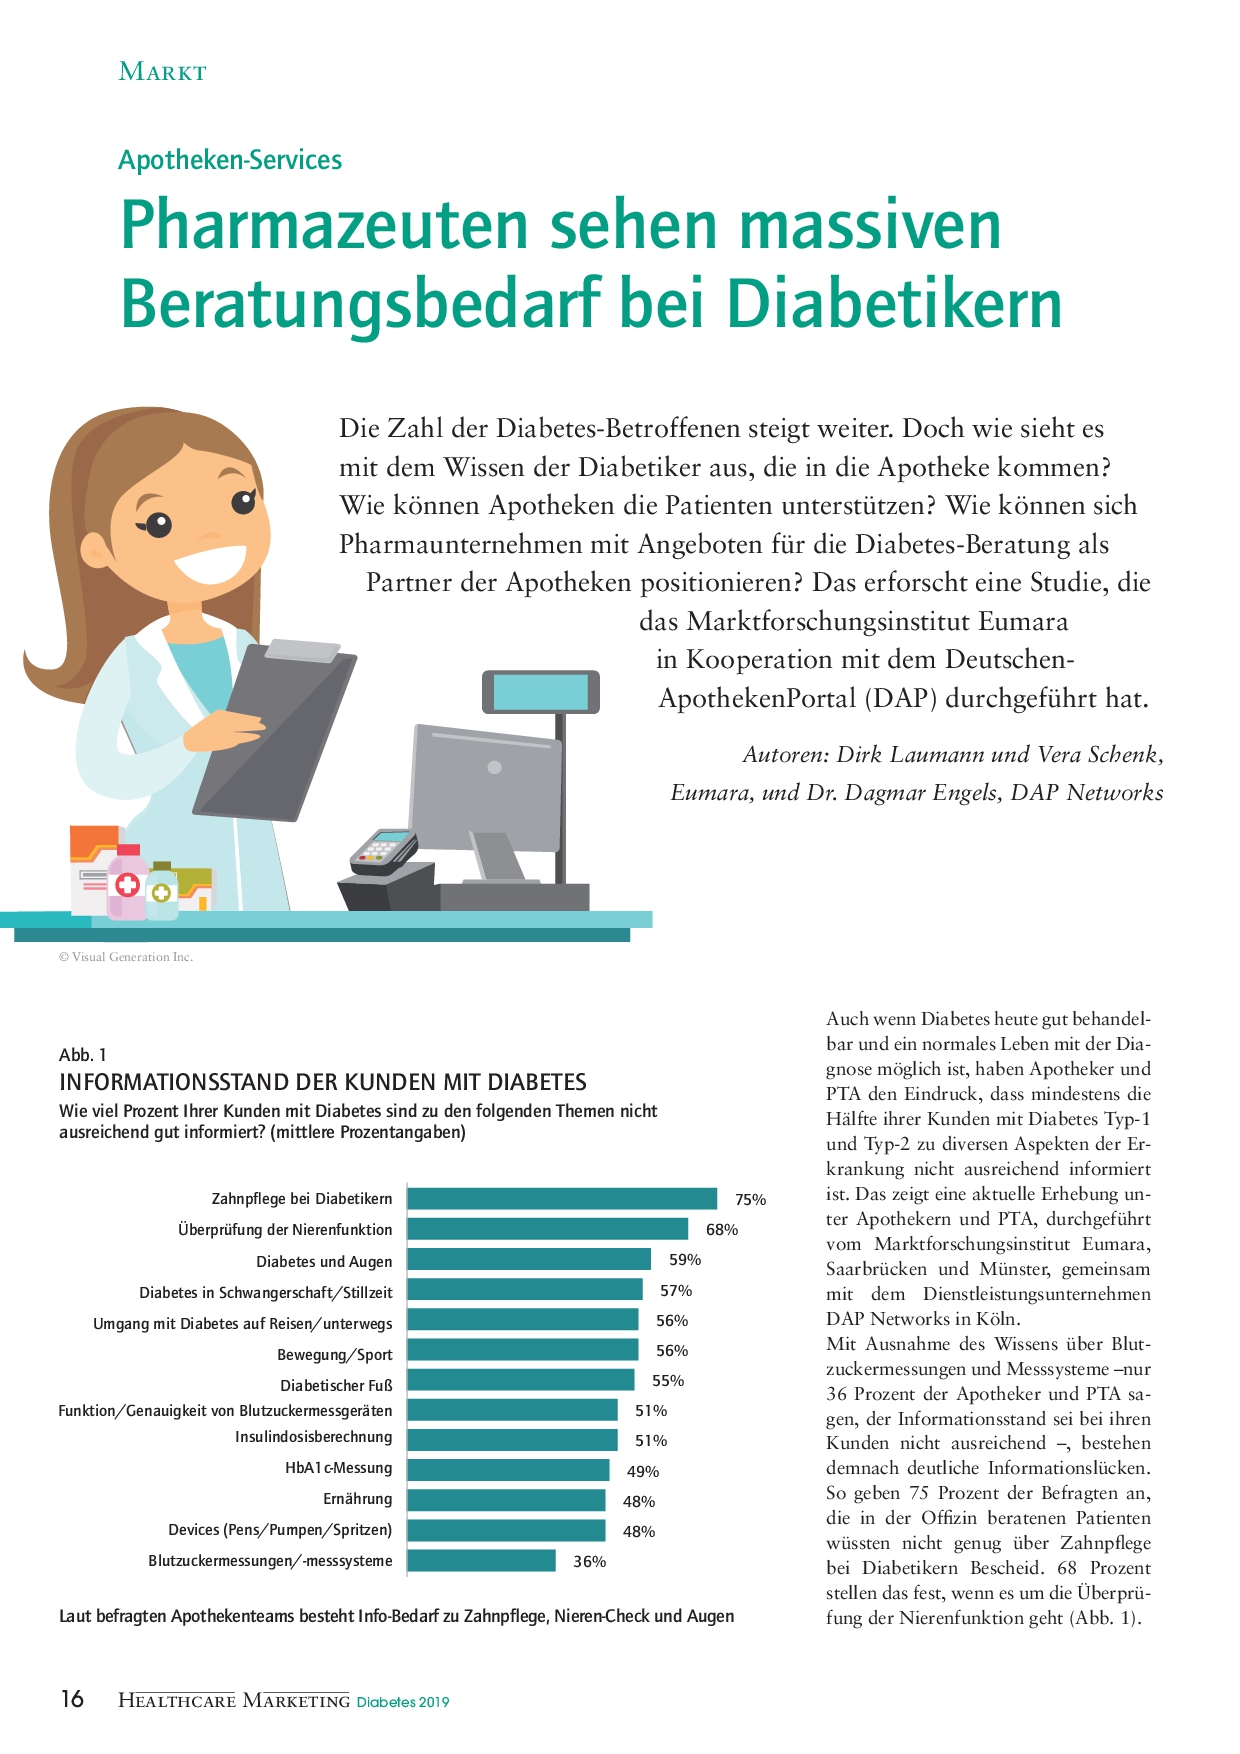 2019 11 EUMARA Healthcare Marketing Sonderheft 11 19 Diabetes1